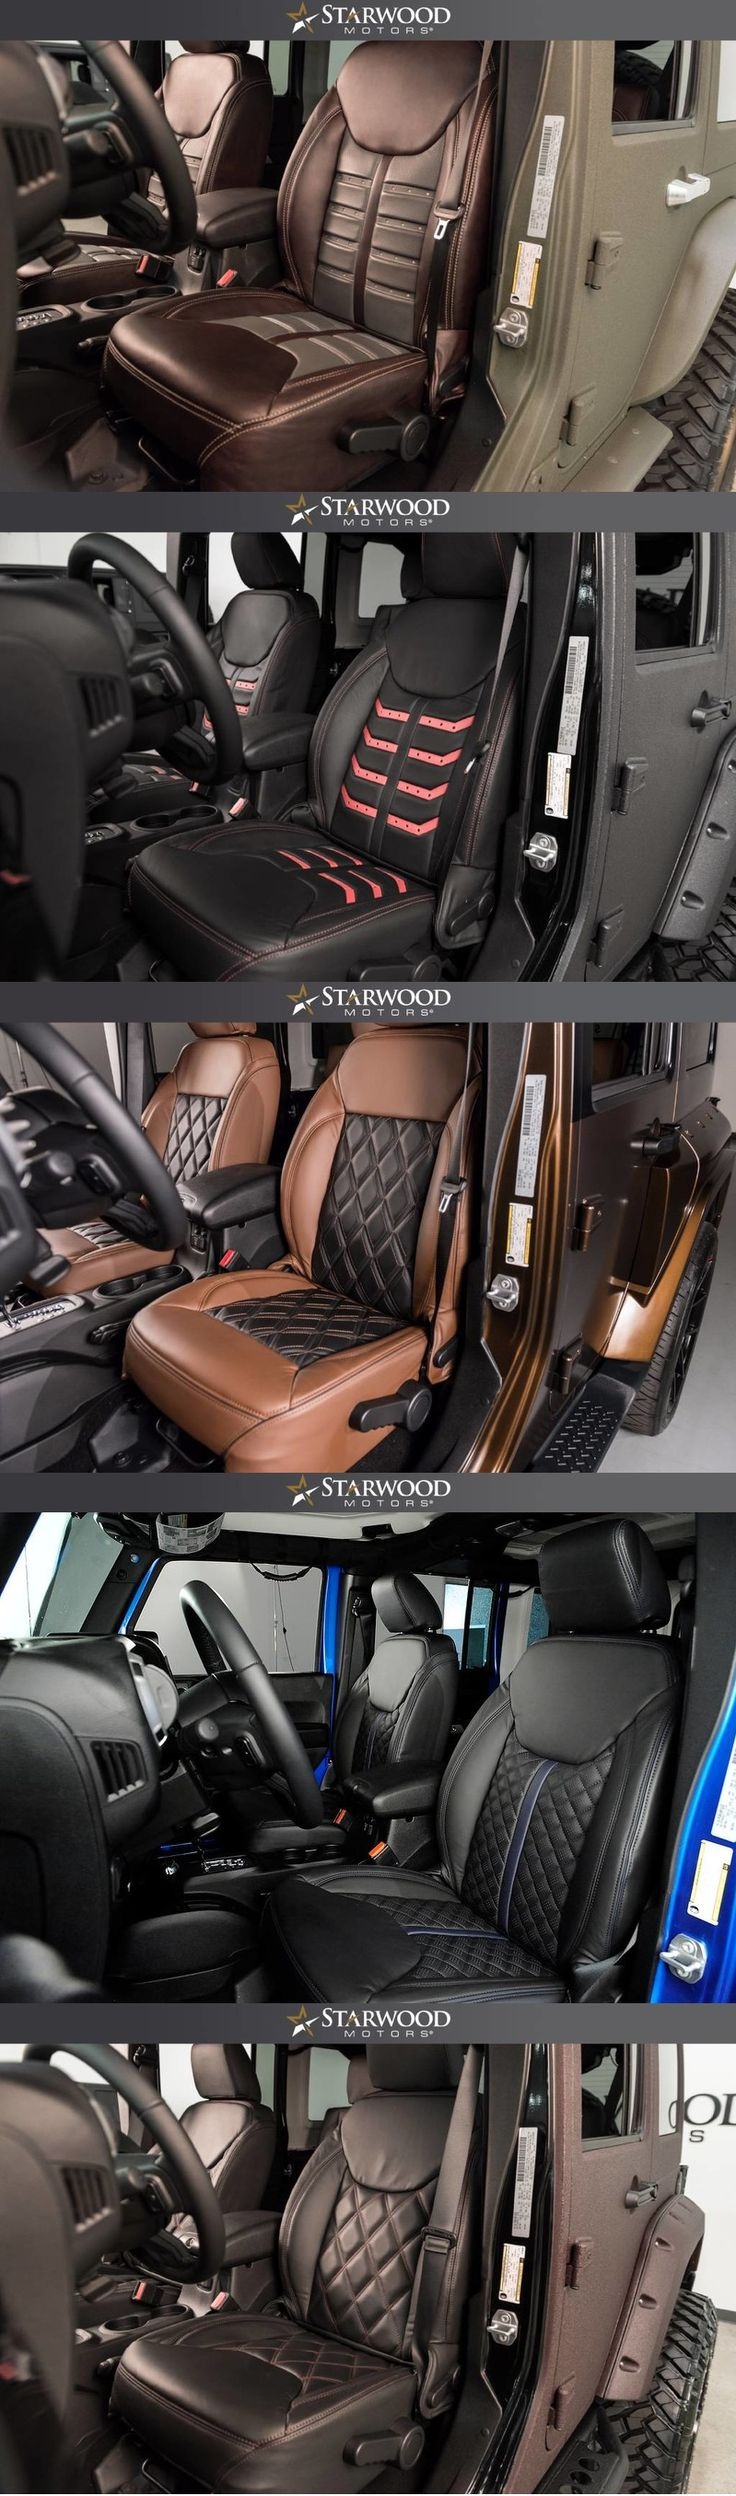 Starwood Motors awesome leather interiors! #starwoodmotors #Jeep #JeepWrangler #CustomJeep #JeepMods #JeepLife #oIIIIIIIo